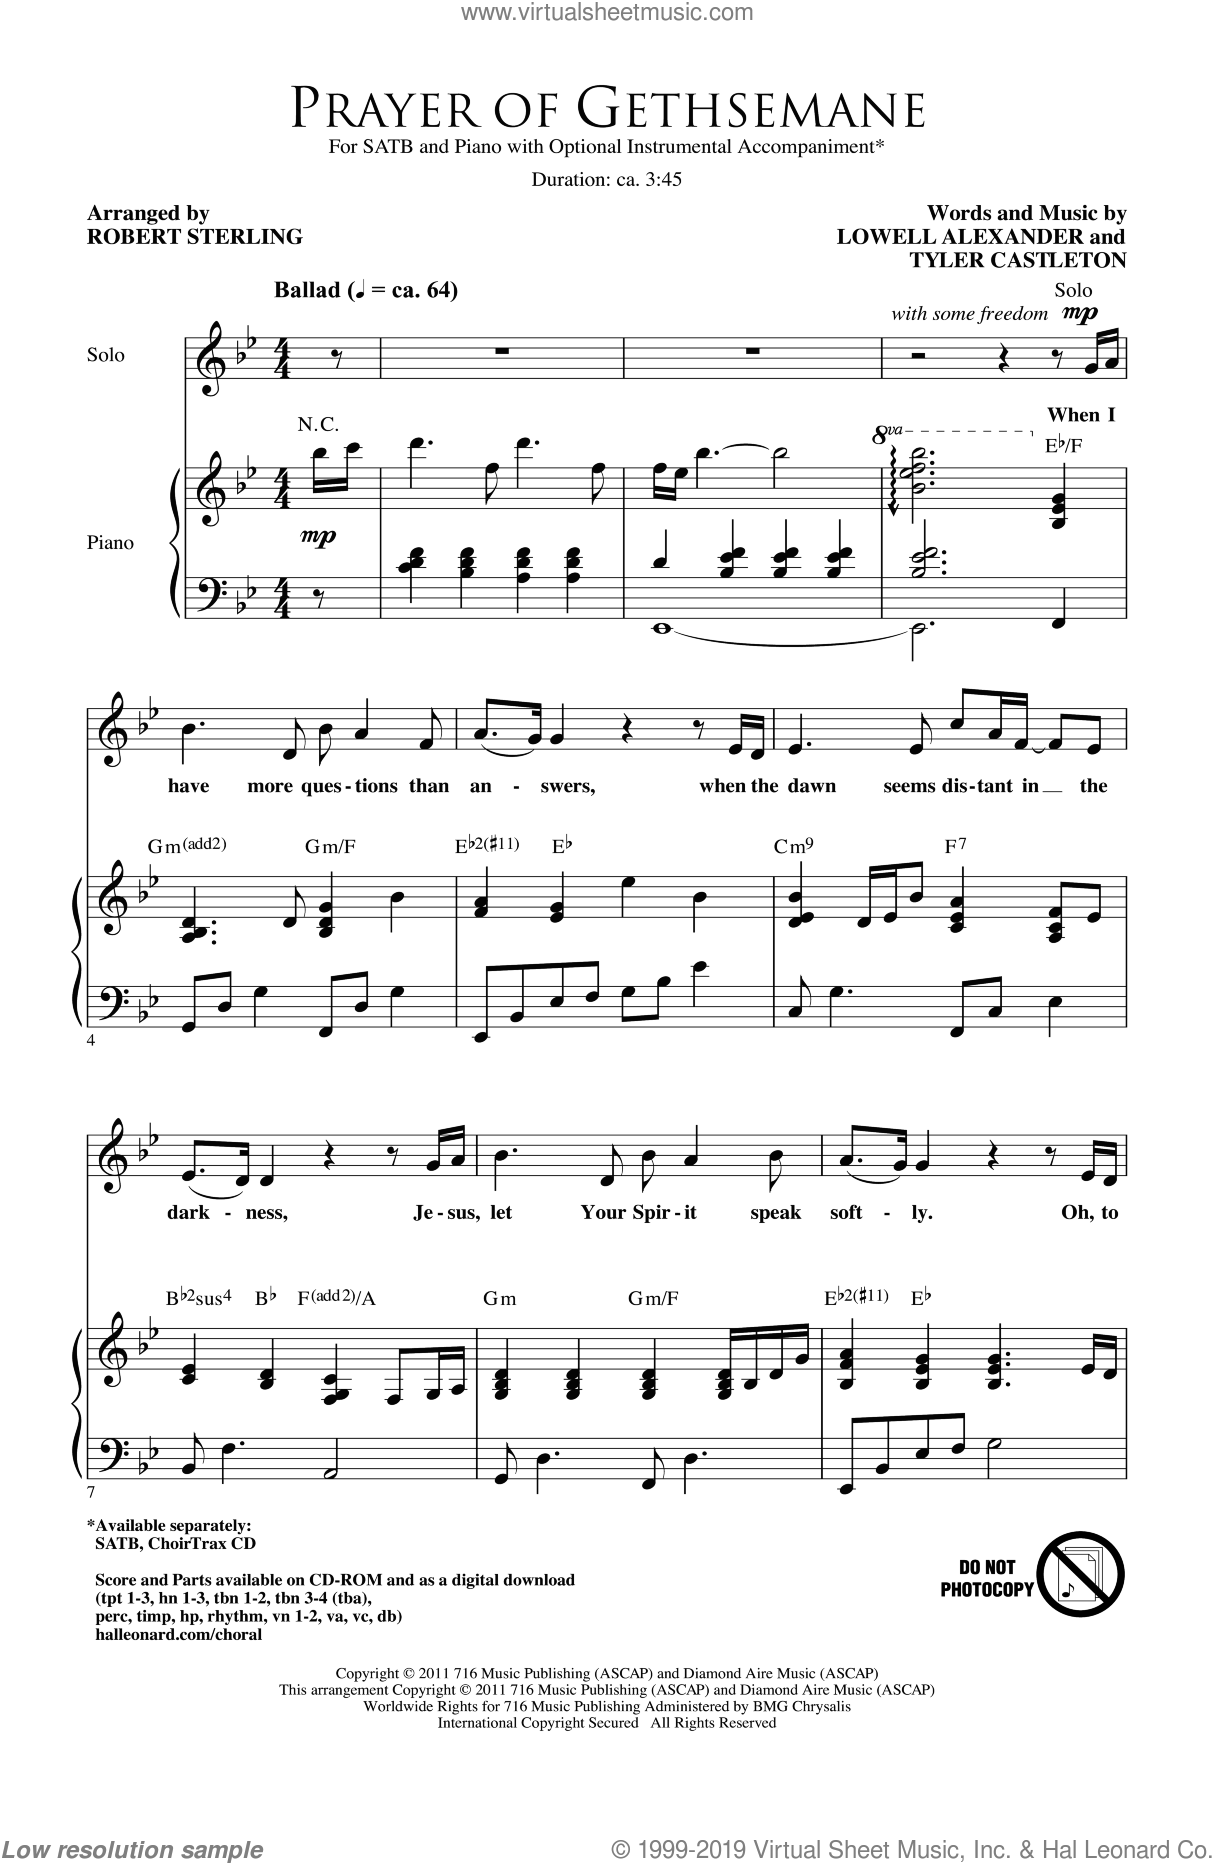 Prayer Of Gethsemane sheet music for choir (SATB: soprano, alto, tenor, bass) by Lowell Alexander, Tyler Castleton and Robert Sterling, intermediate skill level